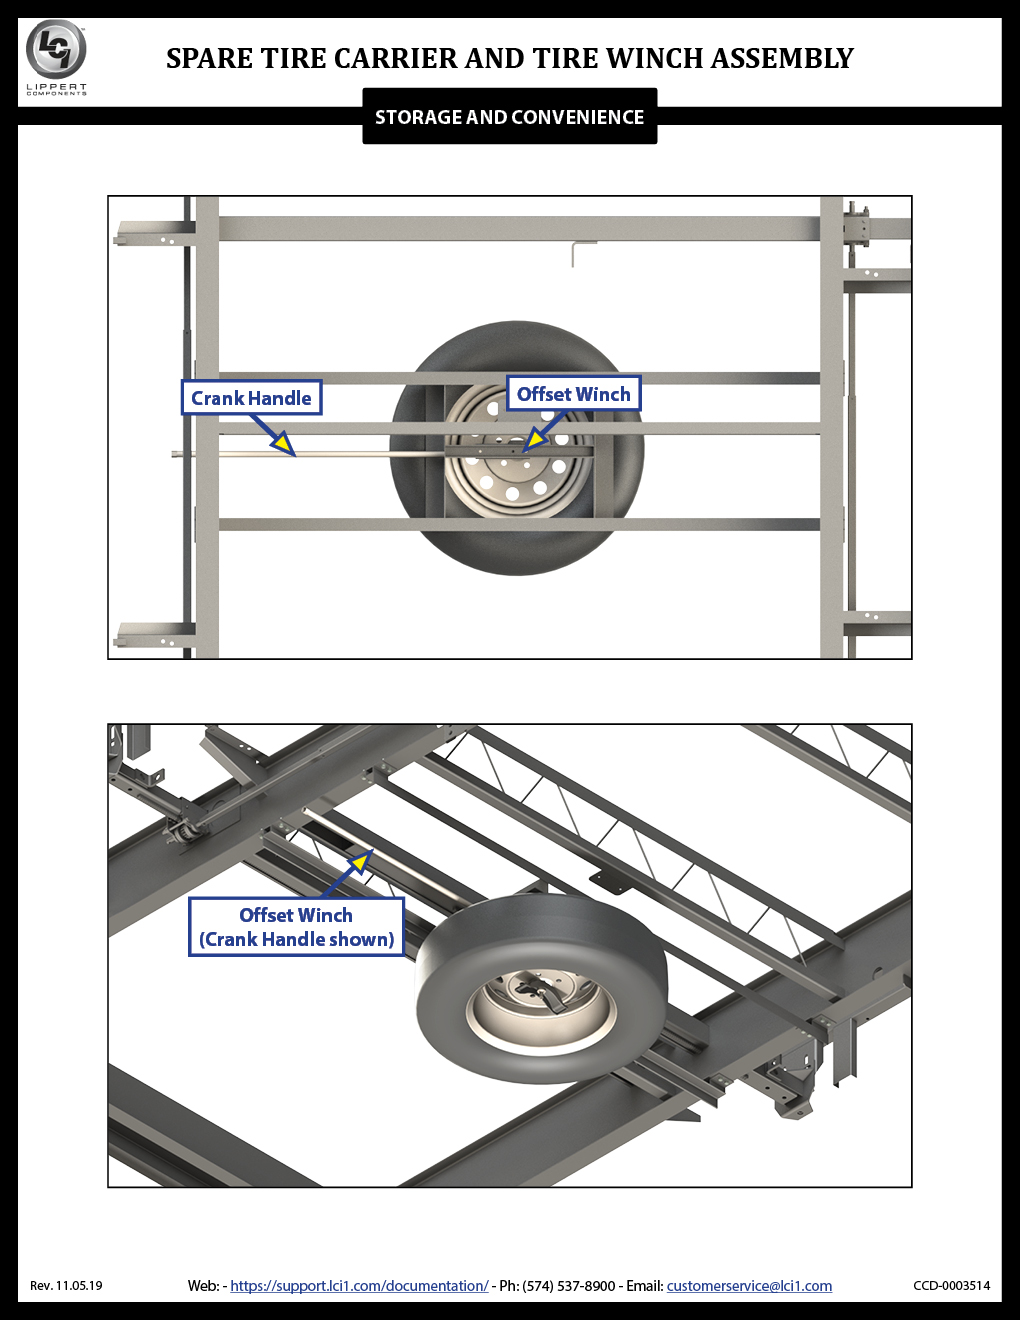 Spare Tire Carrier and Tire Winch Assembly